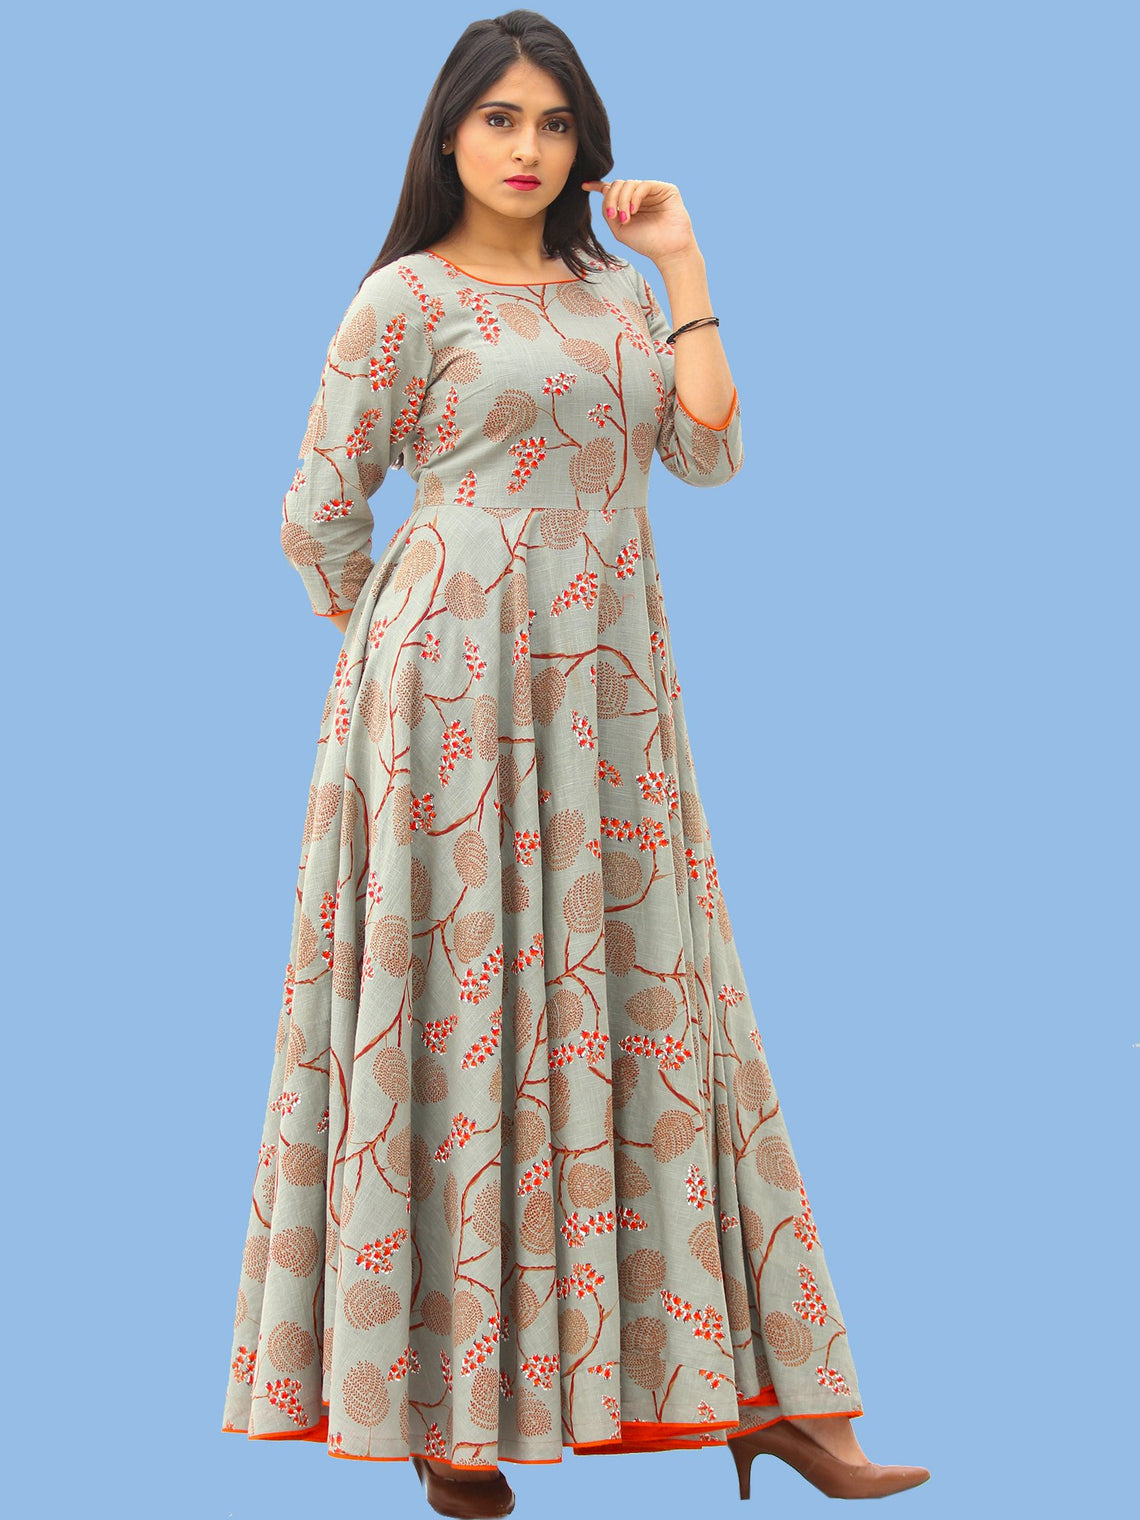 Mahek - Coral Grey Printed Urave Cut Long Dress With Tie Up Deep Back - D395F1992